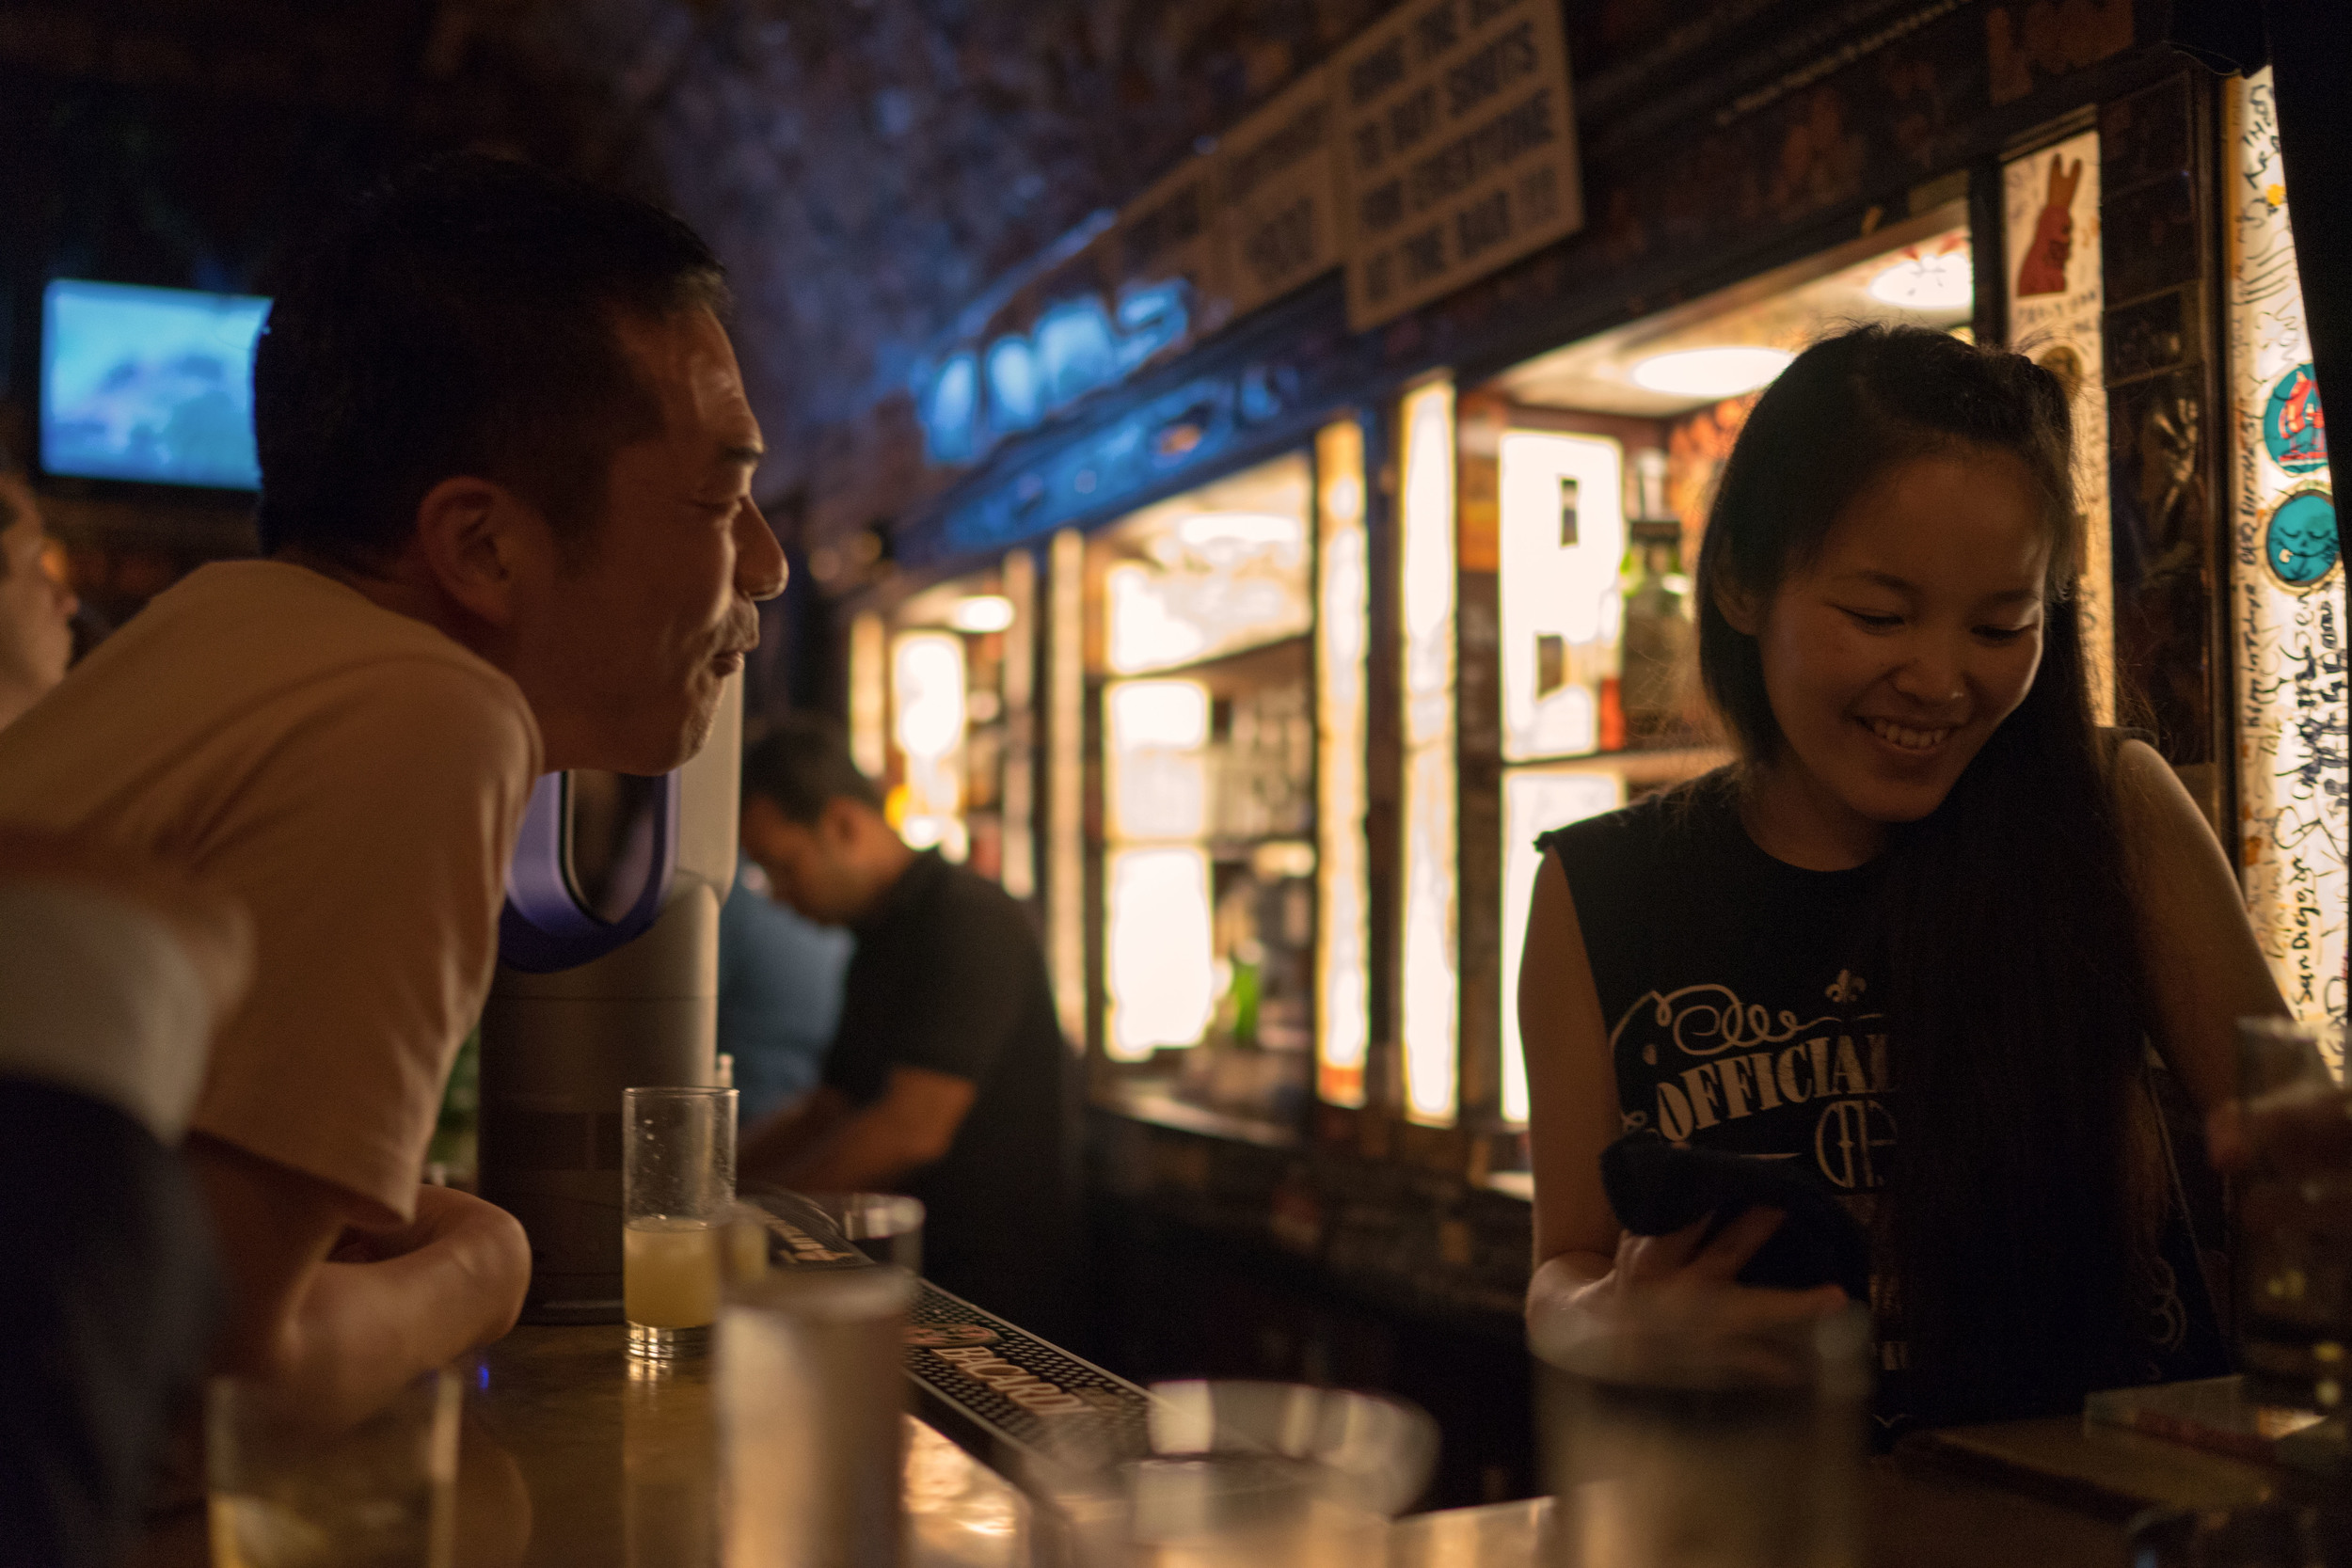 This is the great Mistral Bleu Bar in Tokyo. The Zeiss was very nice here wide open at f/1.4, with a 1/80th shutter and 1250 ISO.